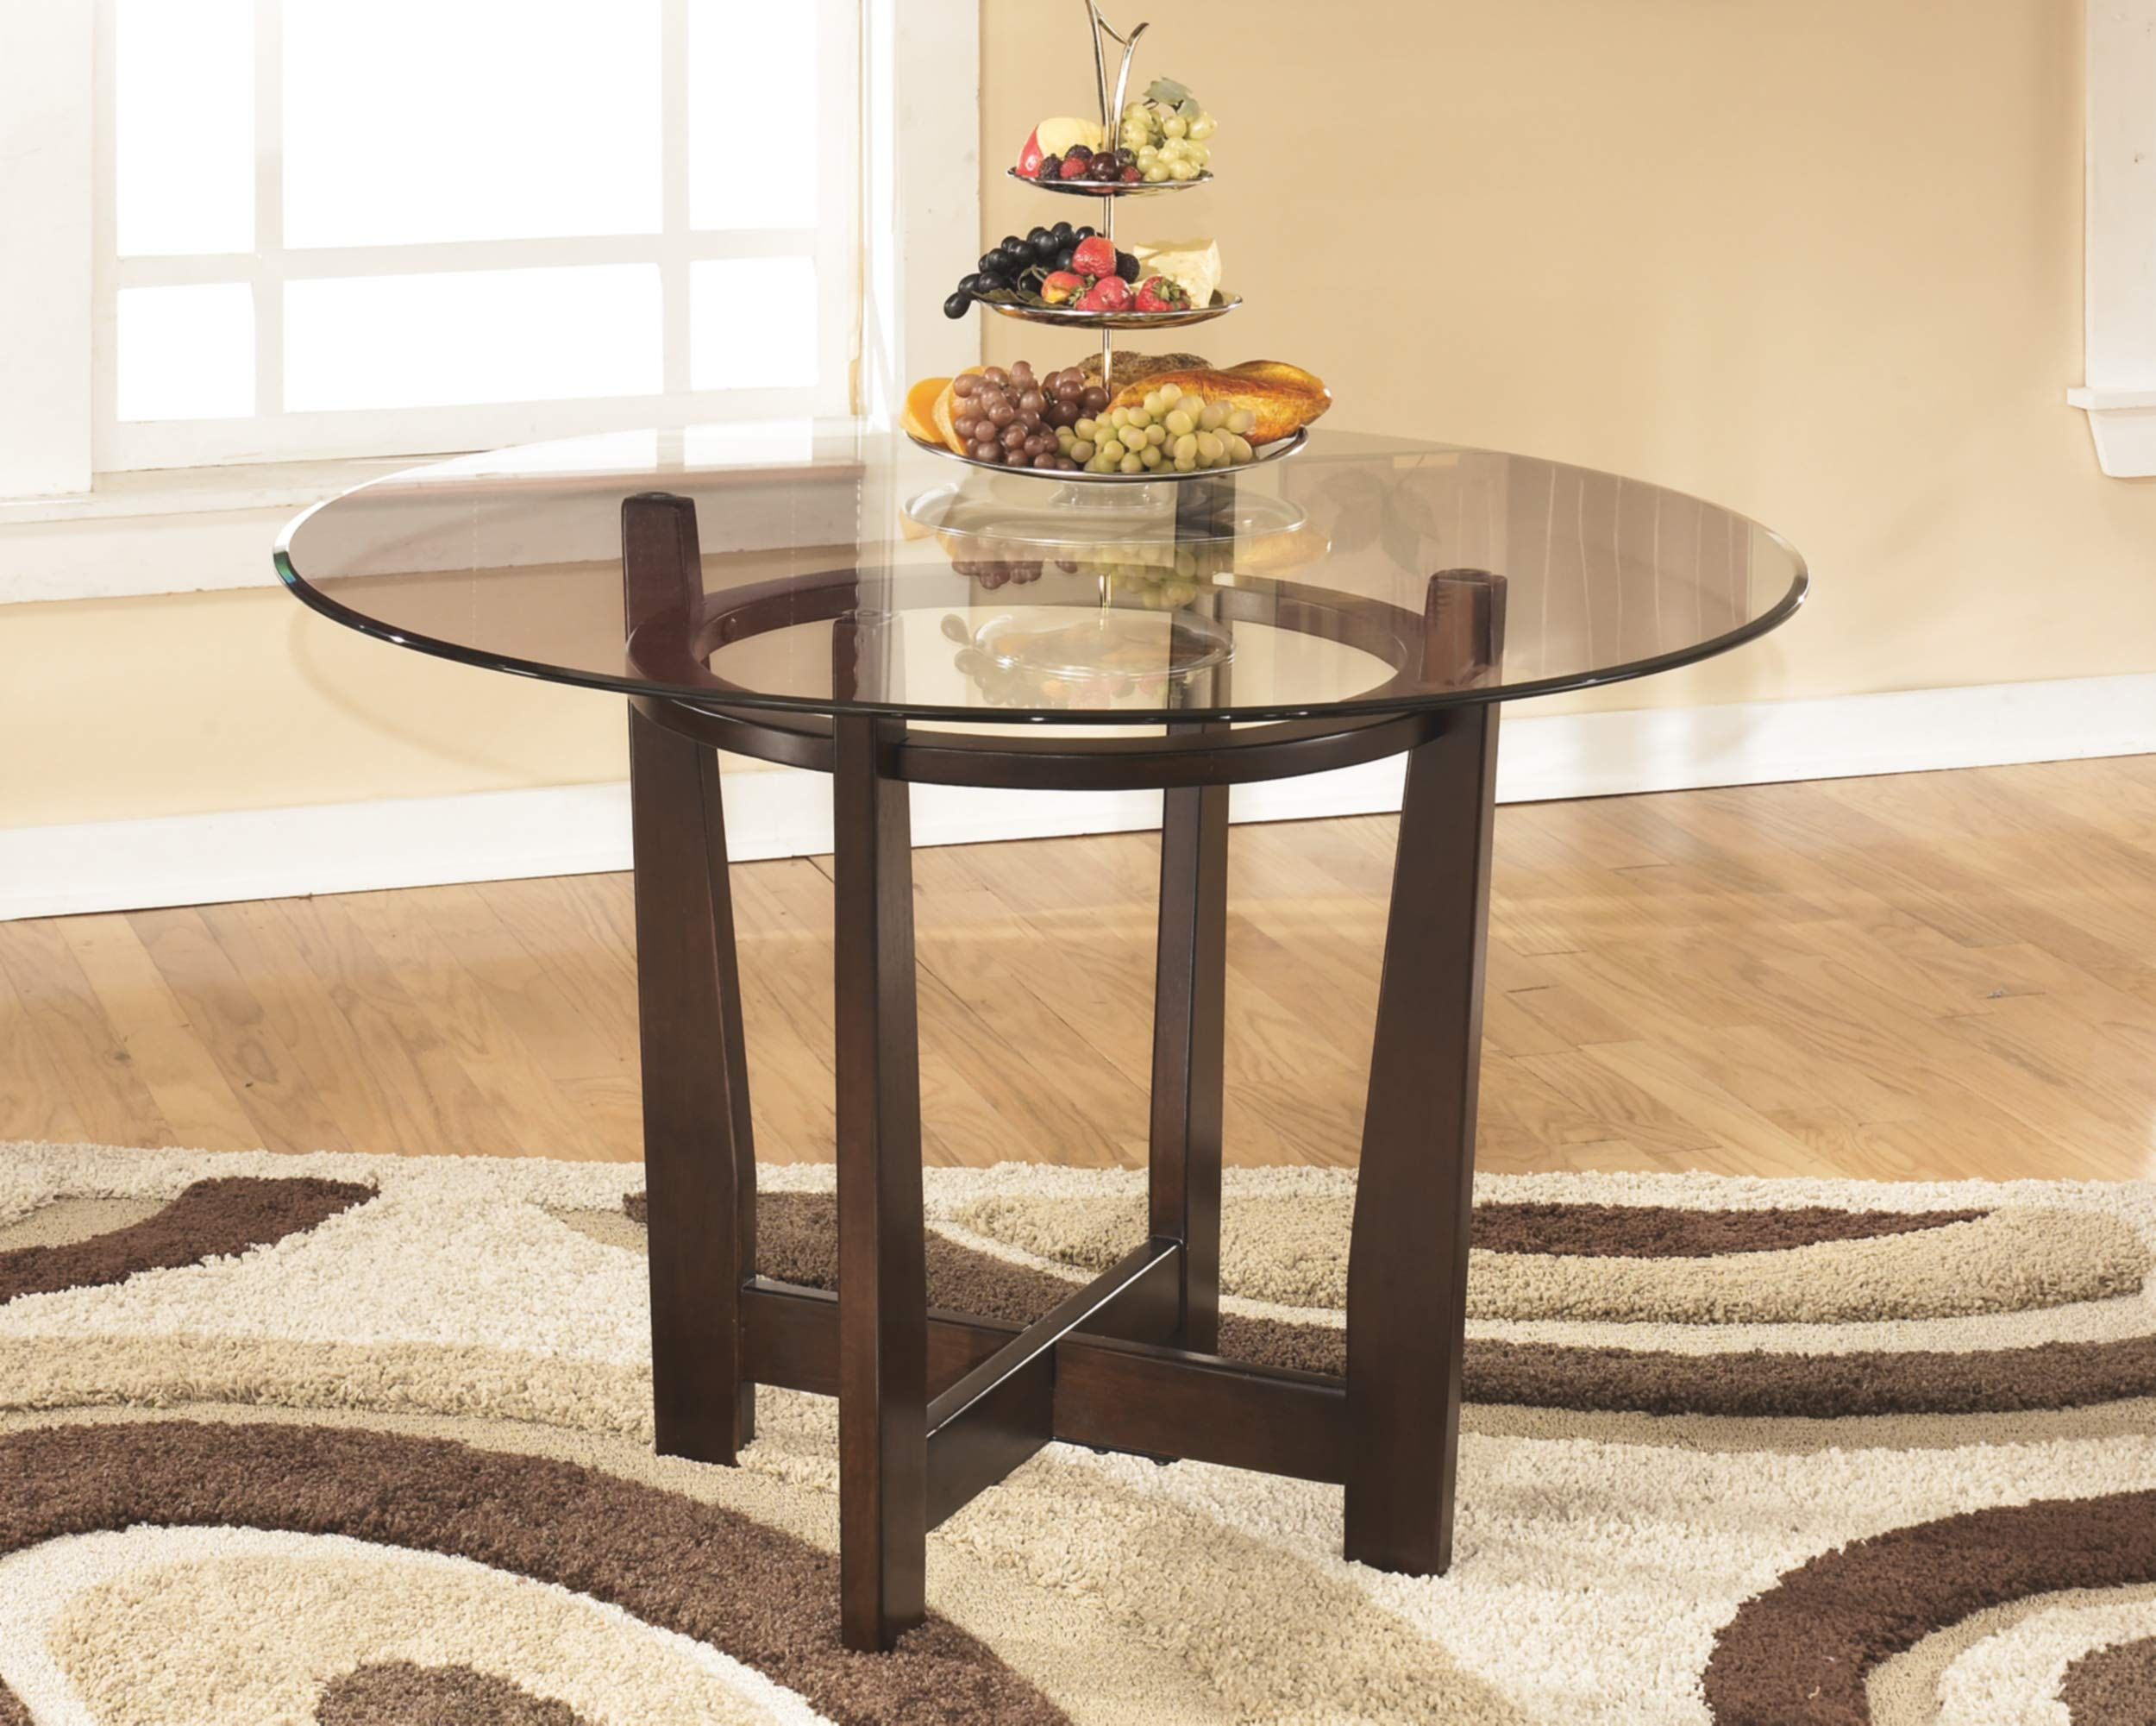 Ashley Furniture Signature Design - Charrell Dining Room Table - Glass Top - Round - Medium Brown by Signature Design by Ashley (Image #2)